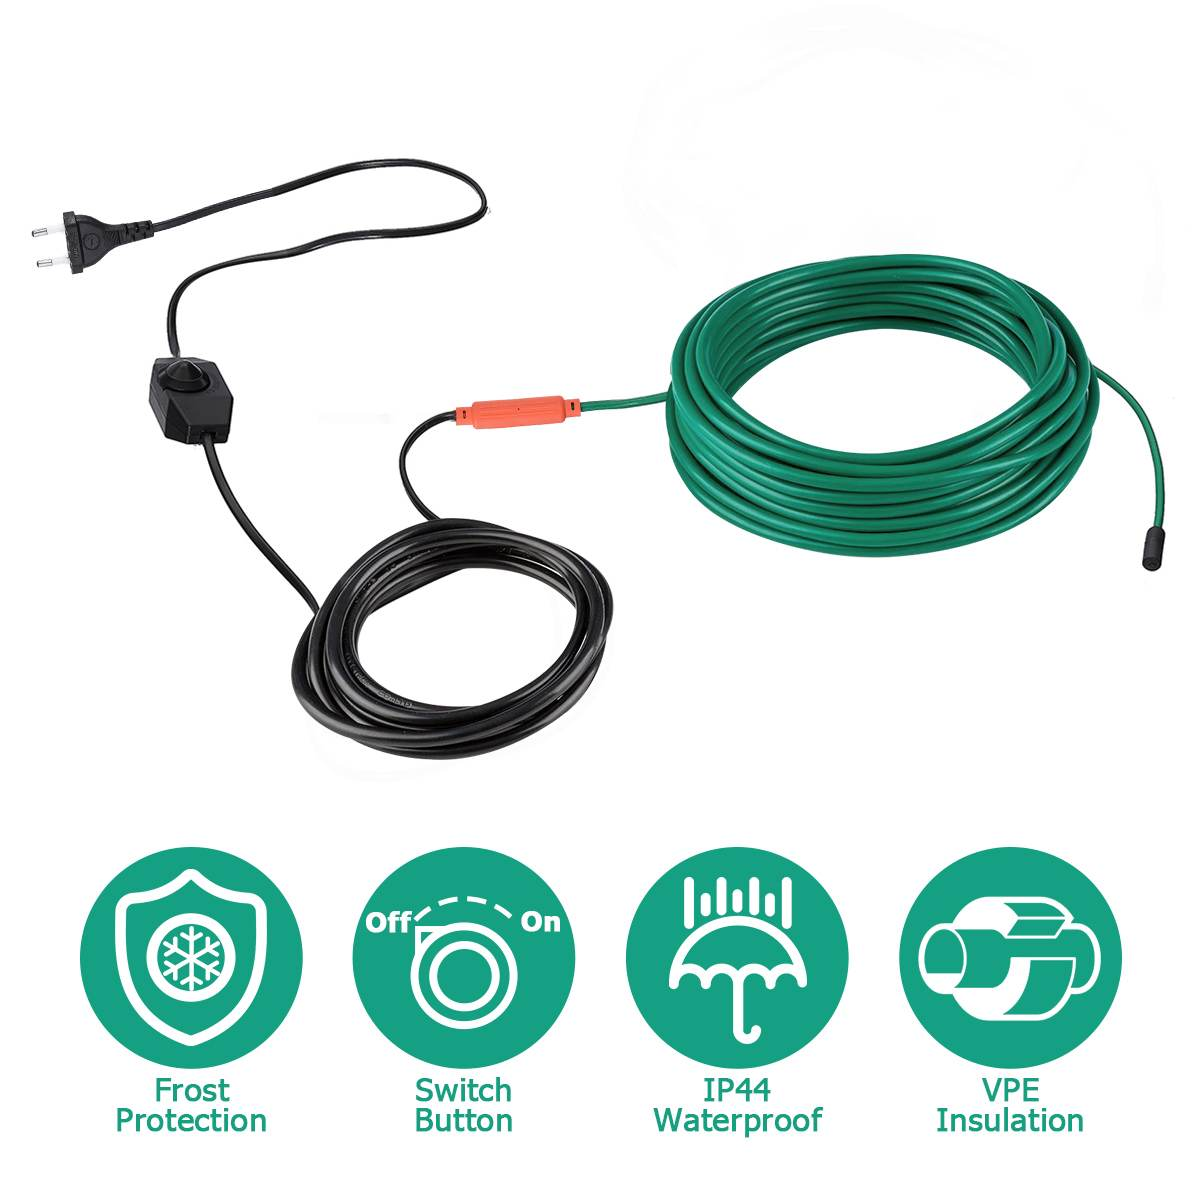 220V EU Plug-in Power Cord Self Regulating Heating waterproof Cable for Water pipe Freeze Protection, Reptiles Pets Heating